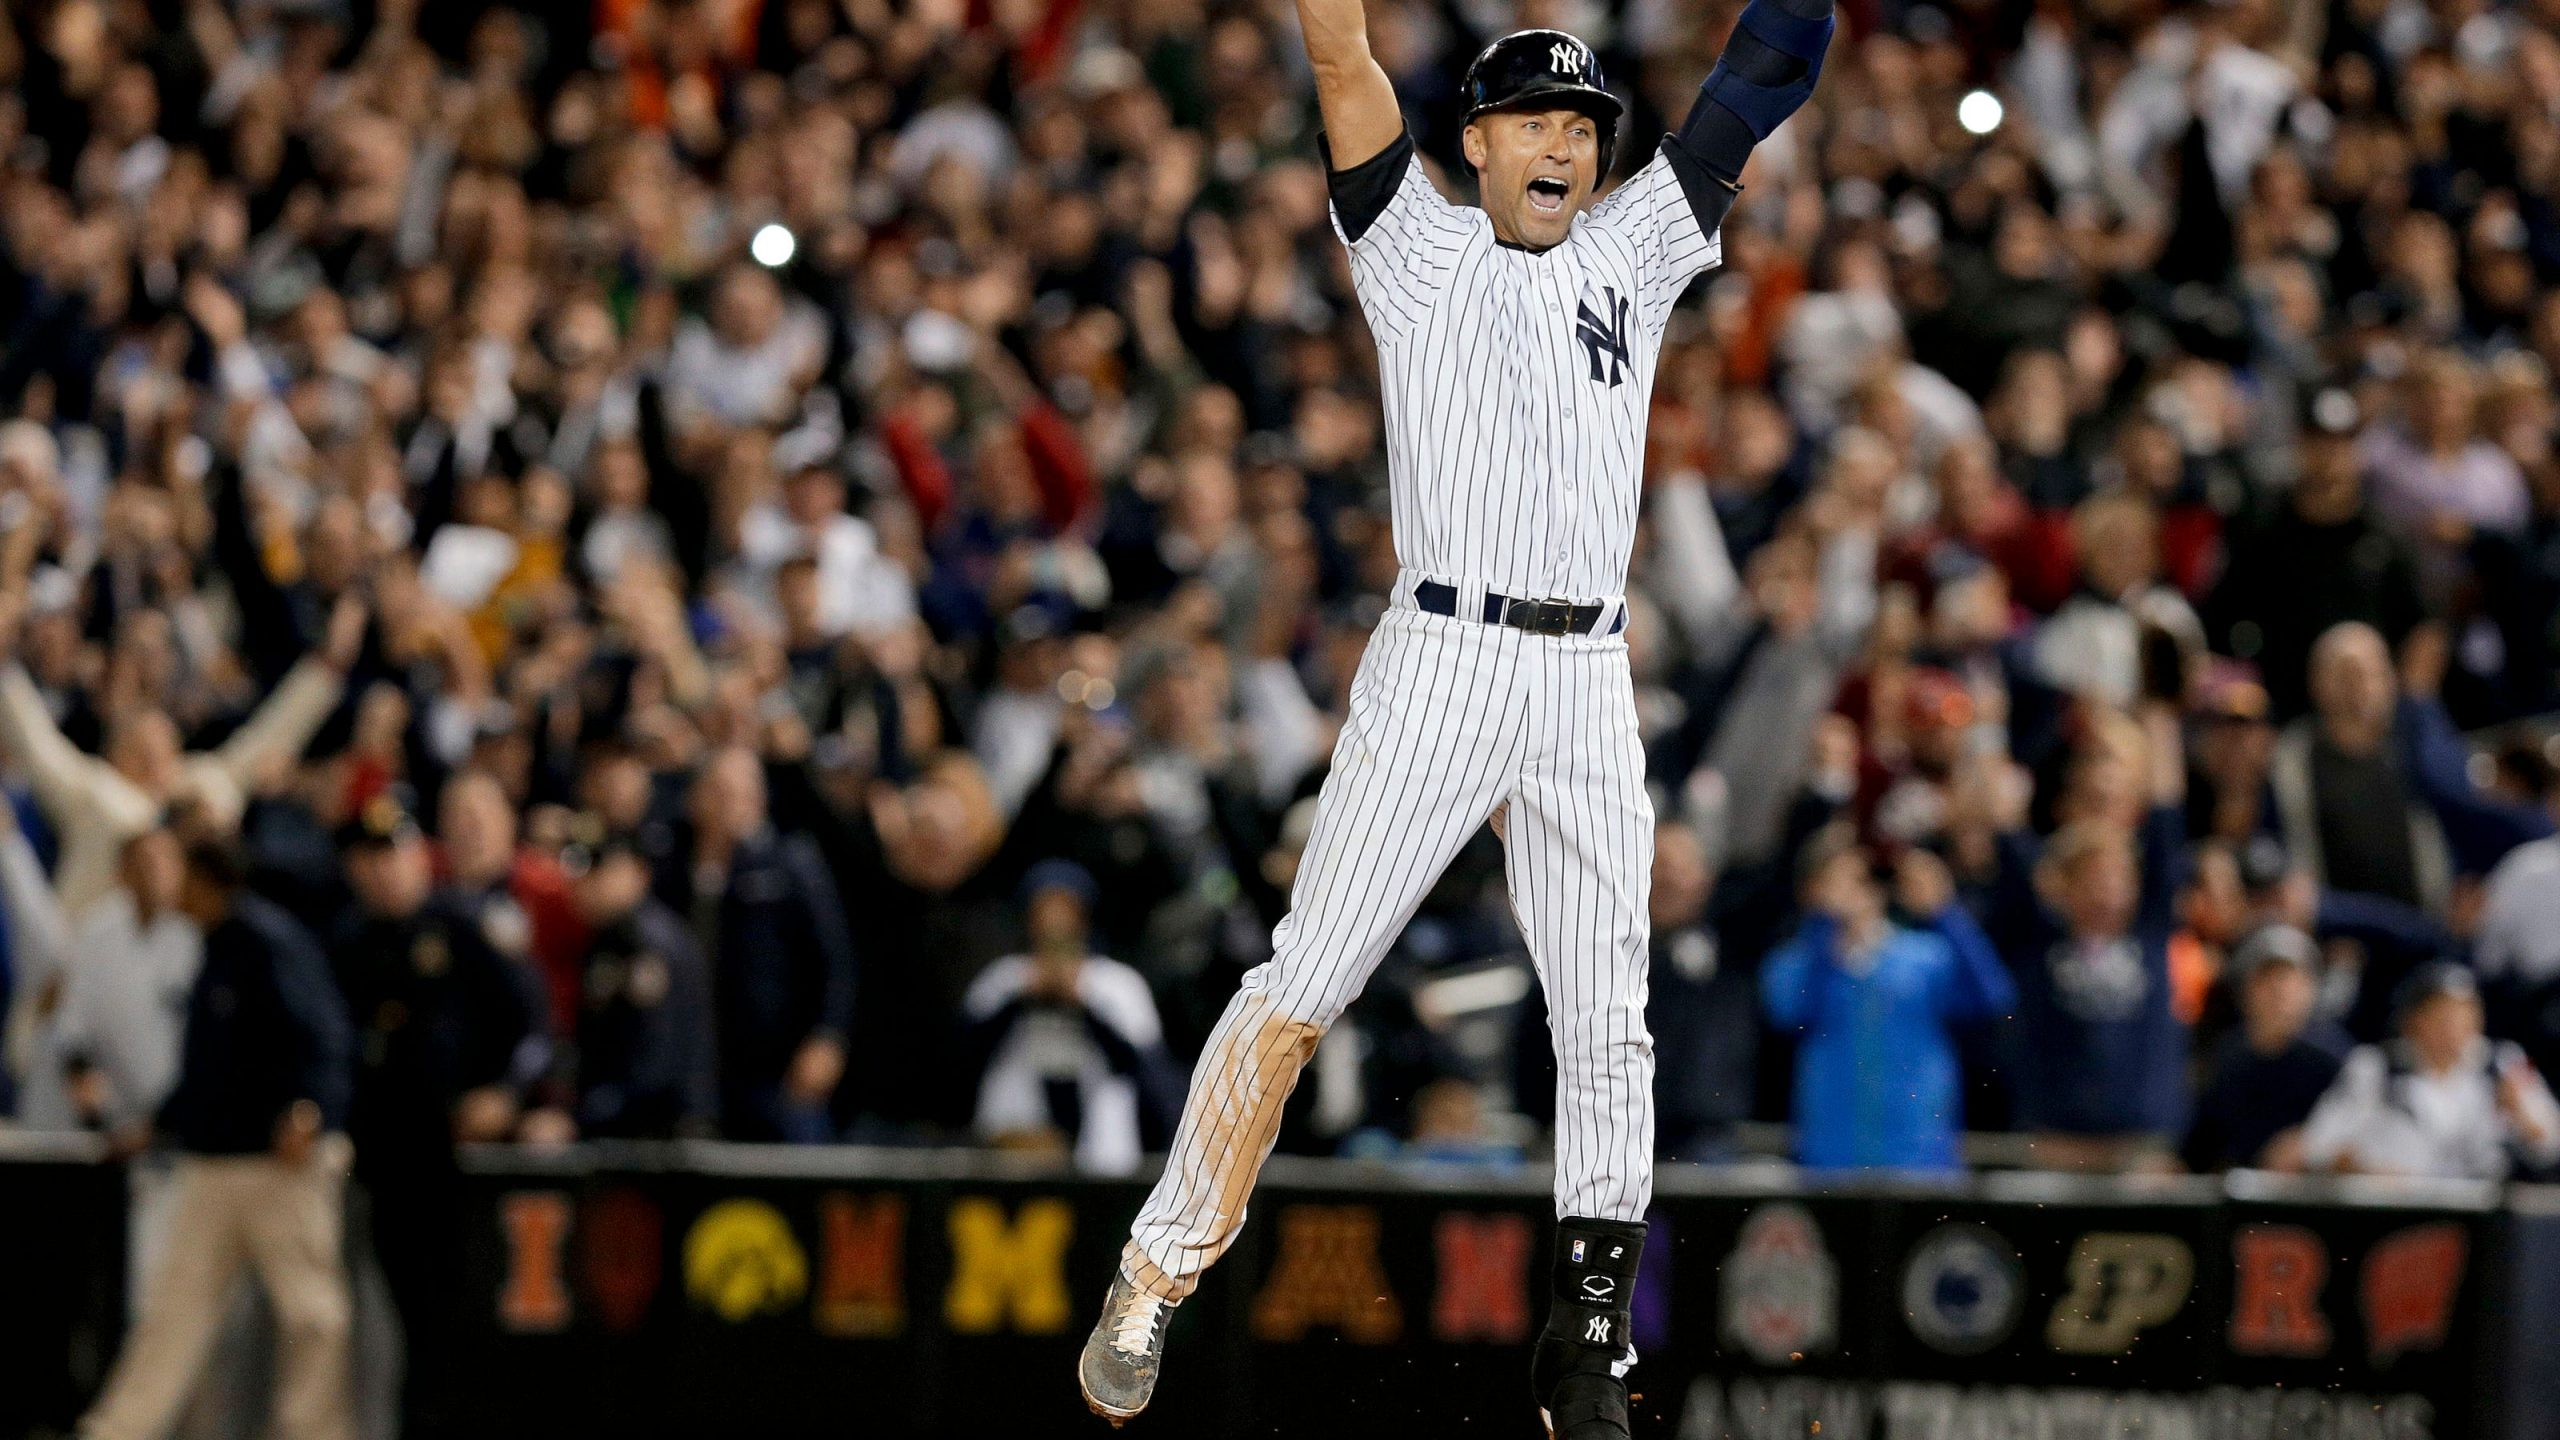 Derek Jeter: Where Does He Rank In All-Time Yankees?